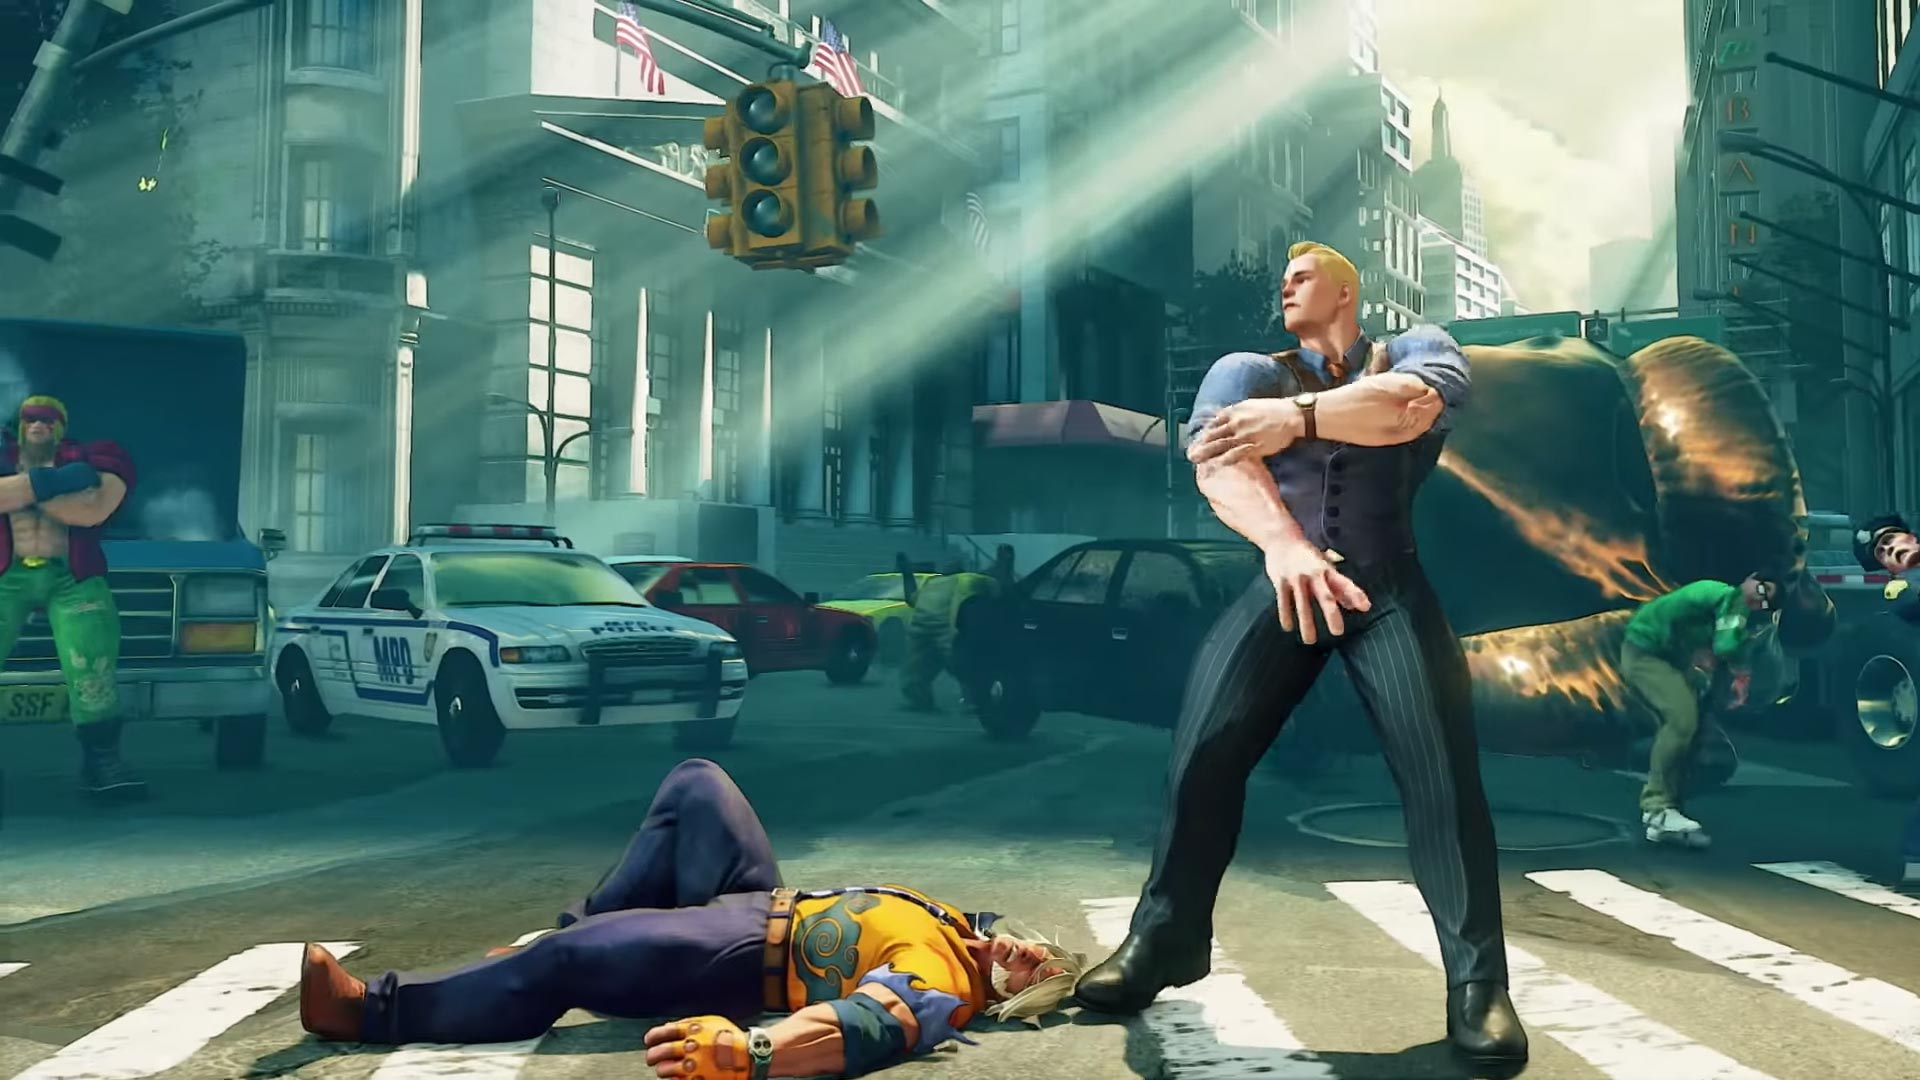 Cody Street Fighter 5: Arcade Edition reveal 3 out of 9 image gallery